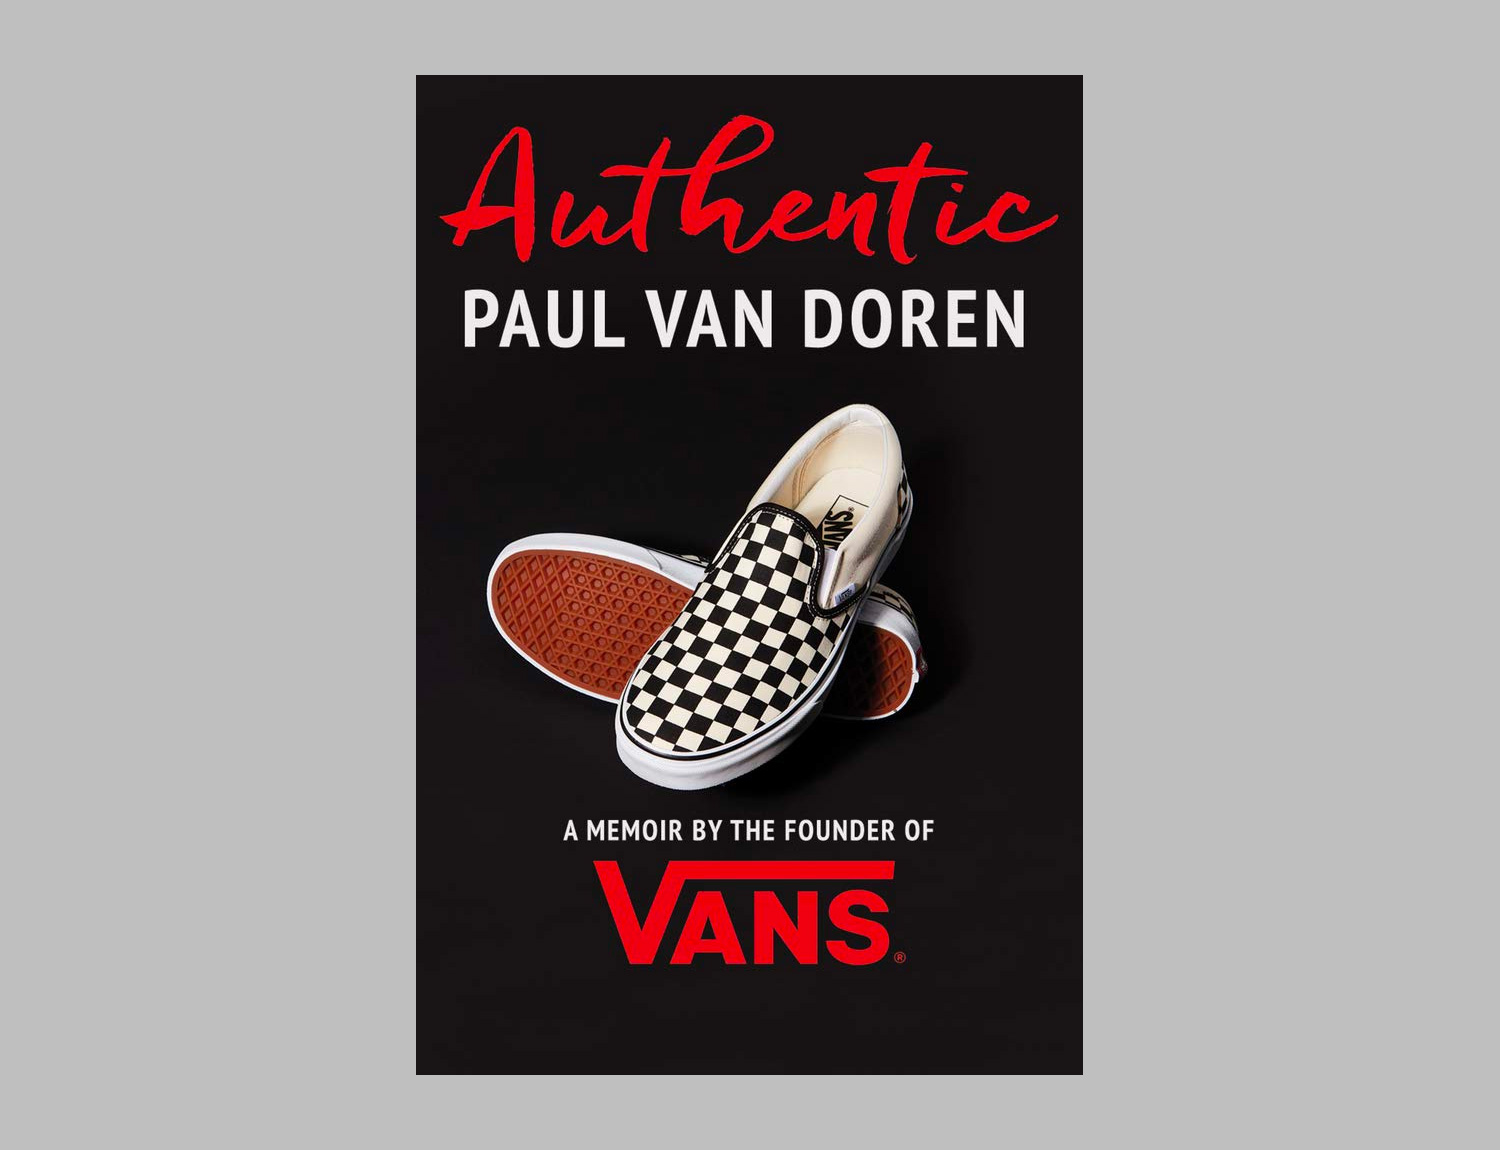 Authentic: A Memoir by the Founder of Vans at werd.com